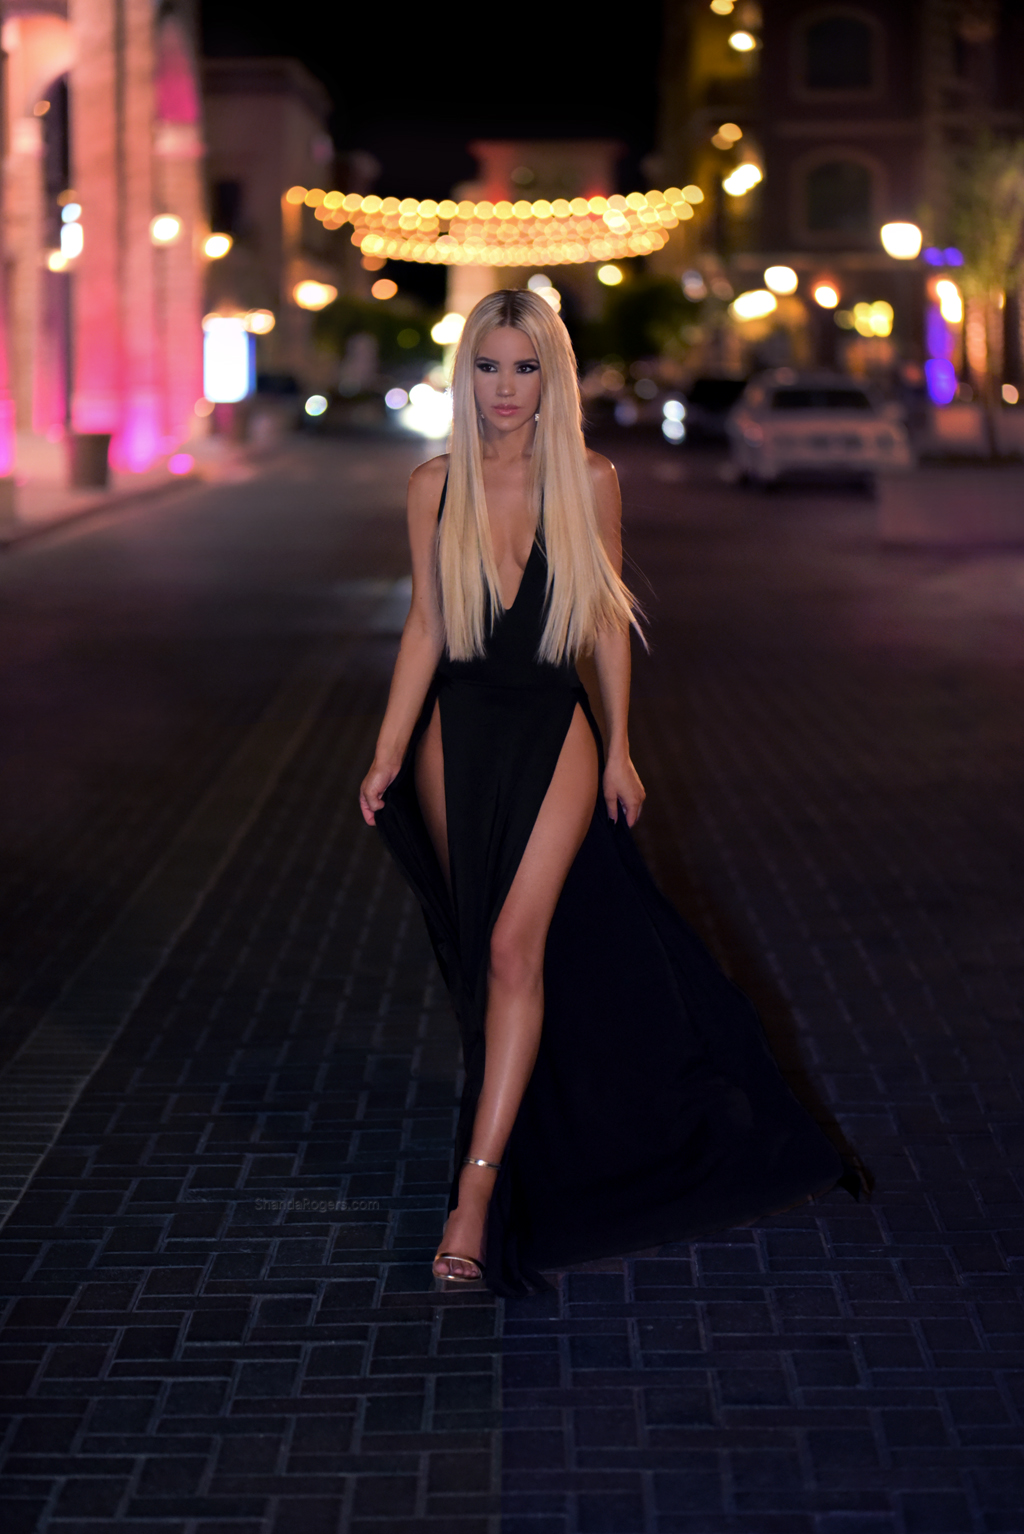 The Double Trouble black Evening Gown